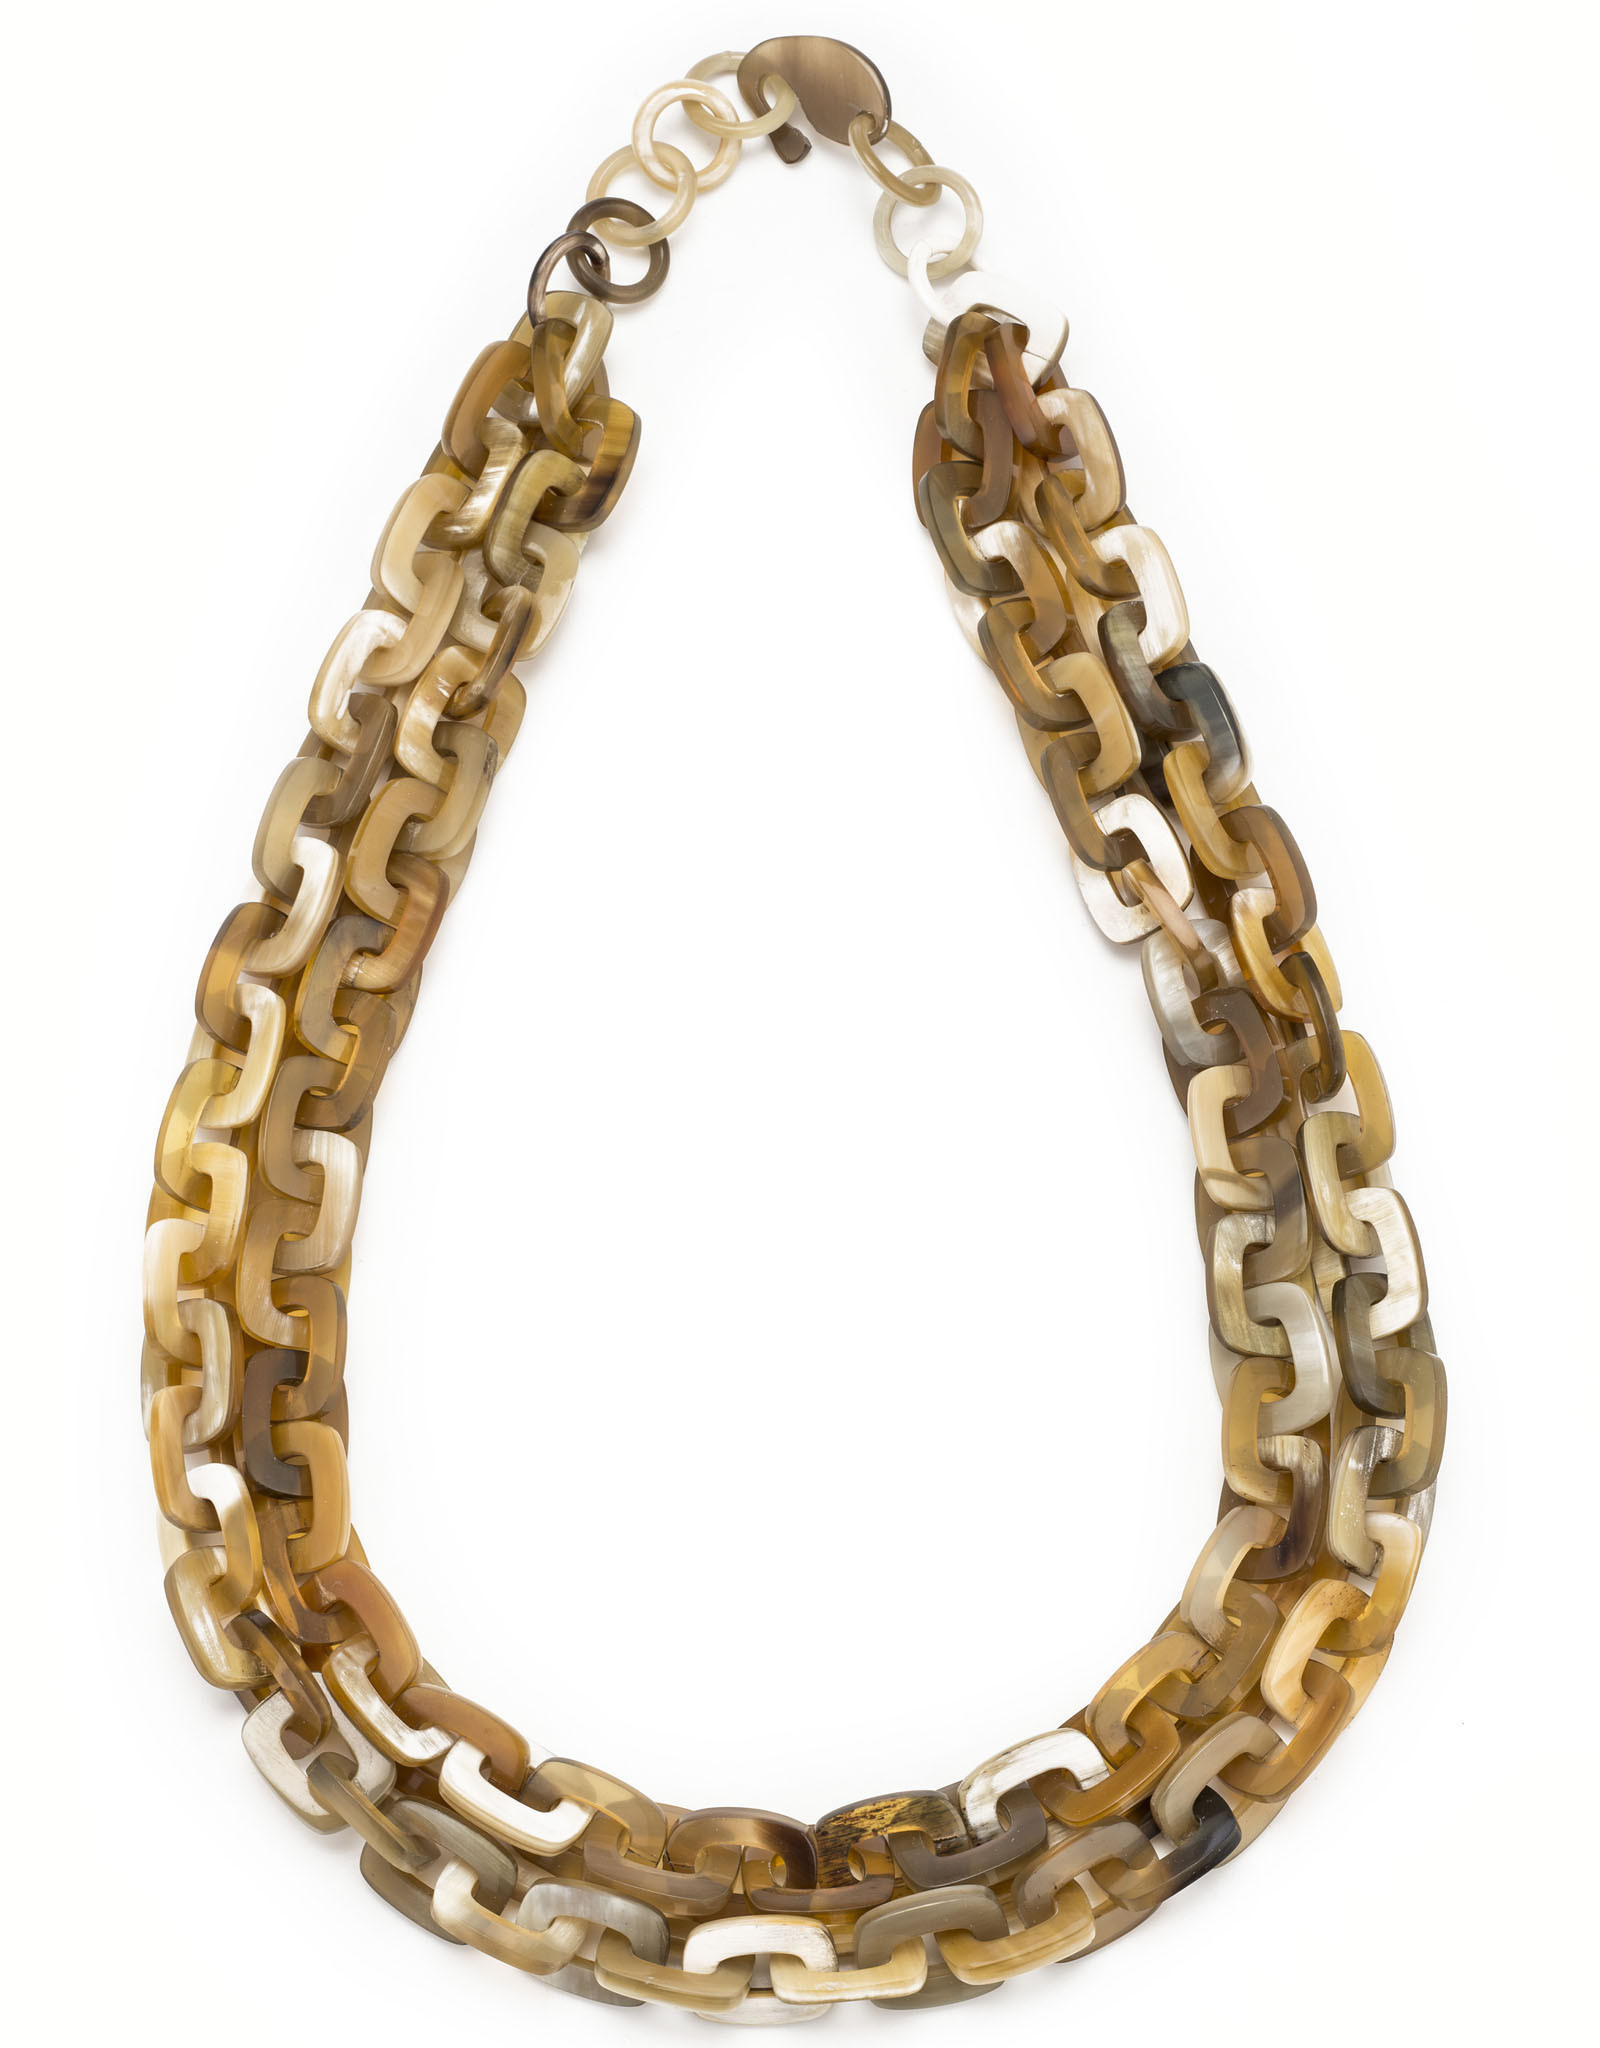 Vivo Buffalo Horn Necklace Square Links